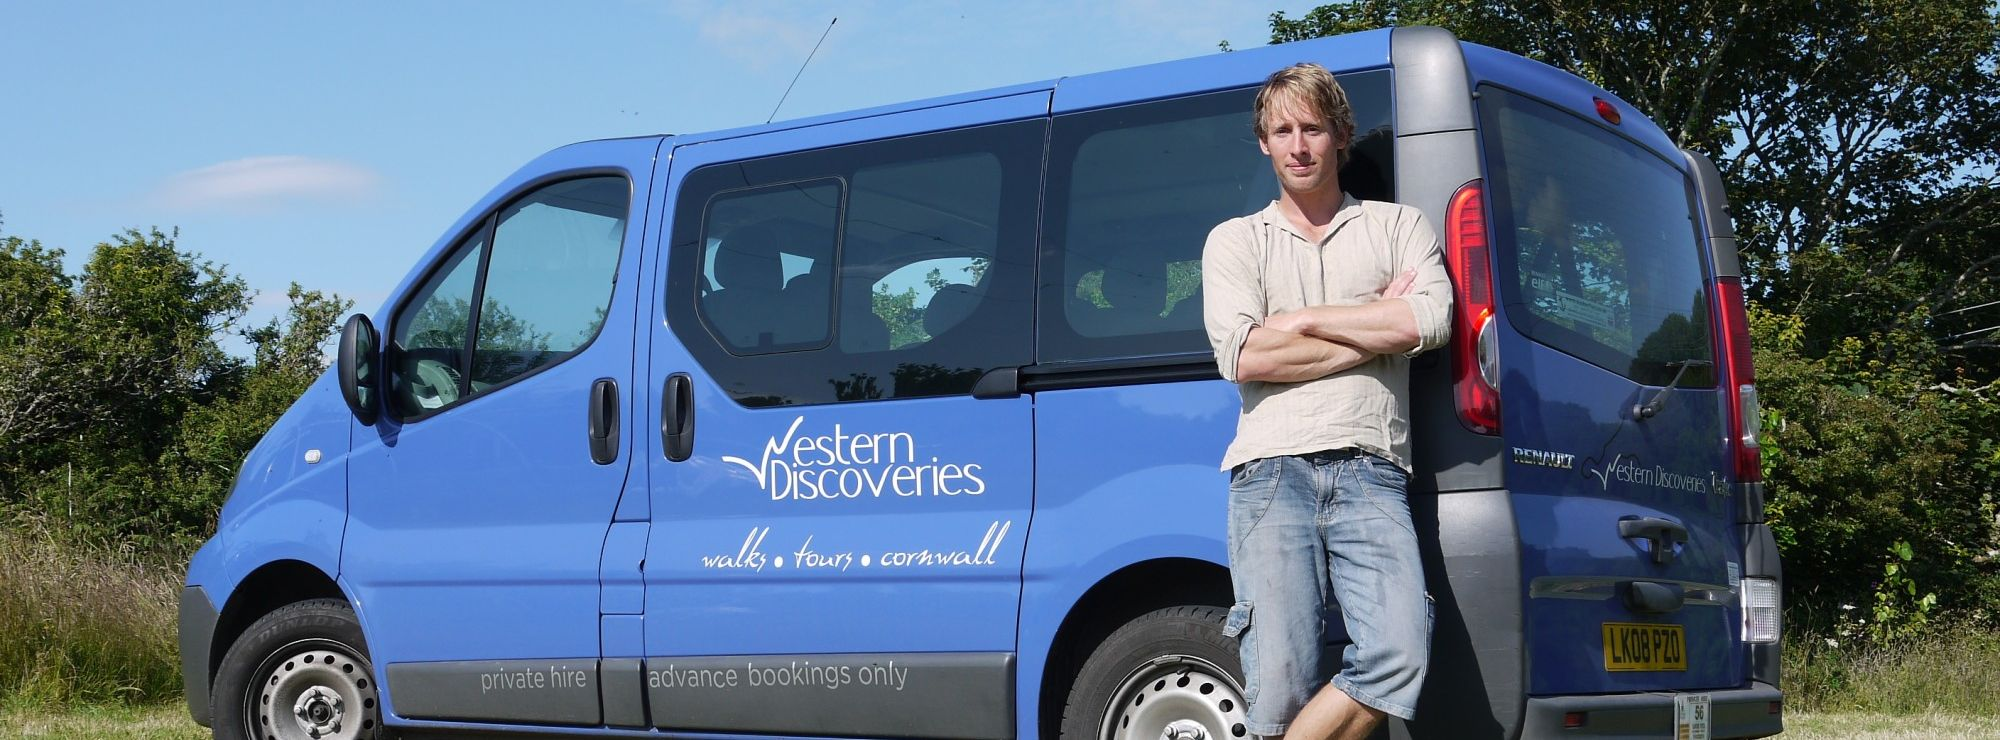 Western Discoveries minibus and staff